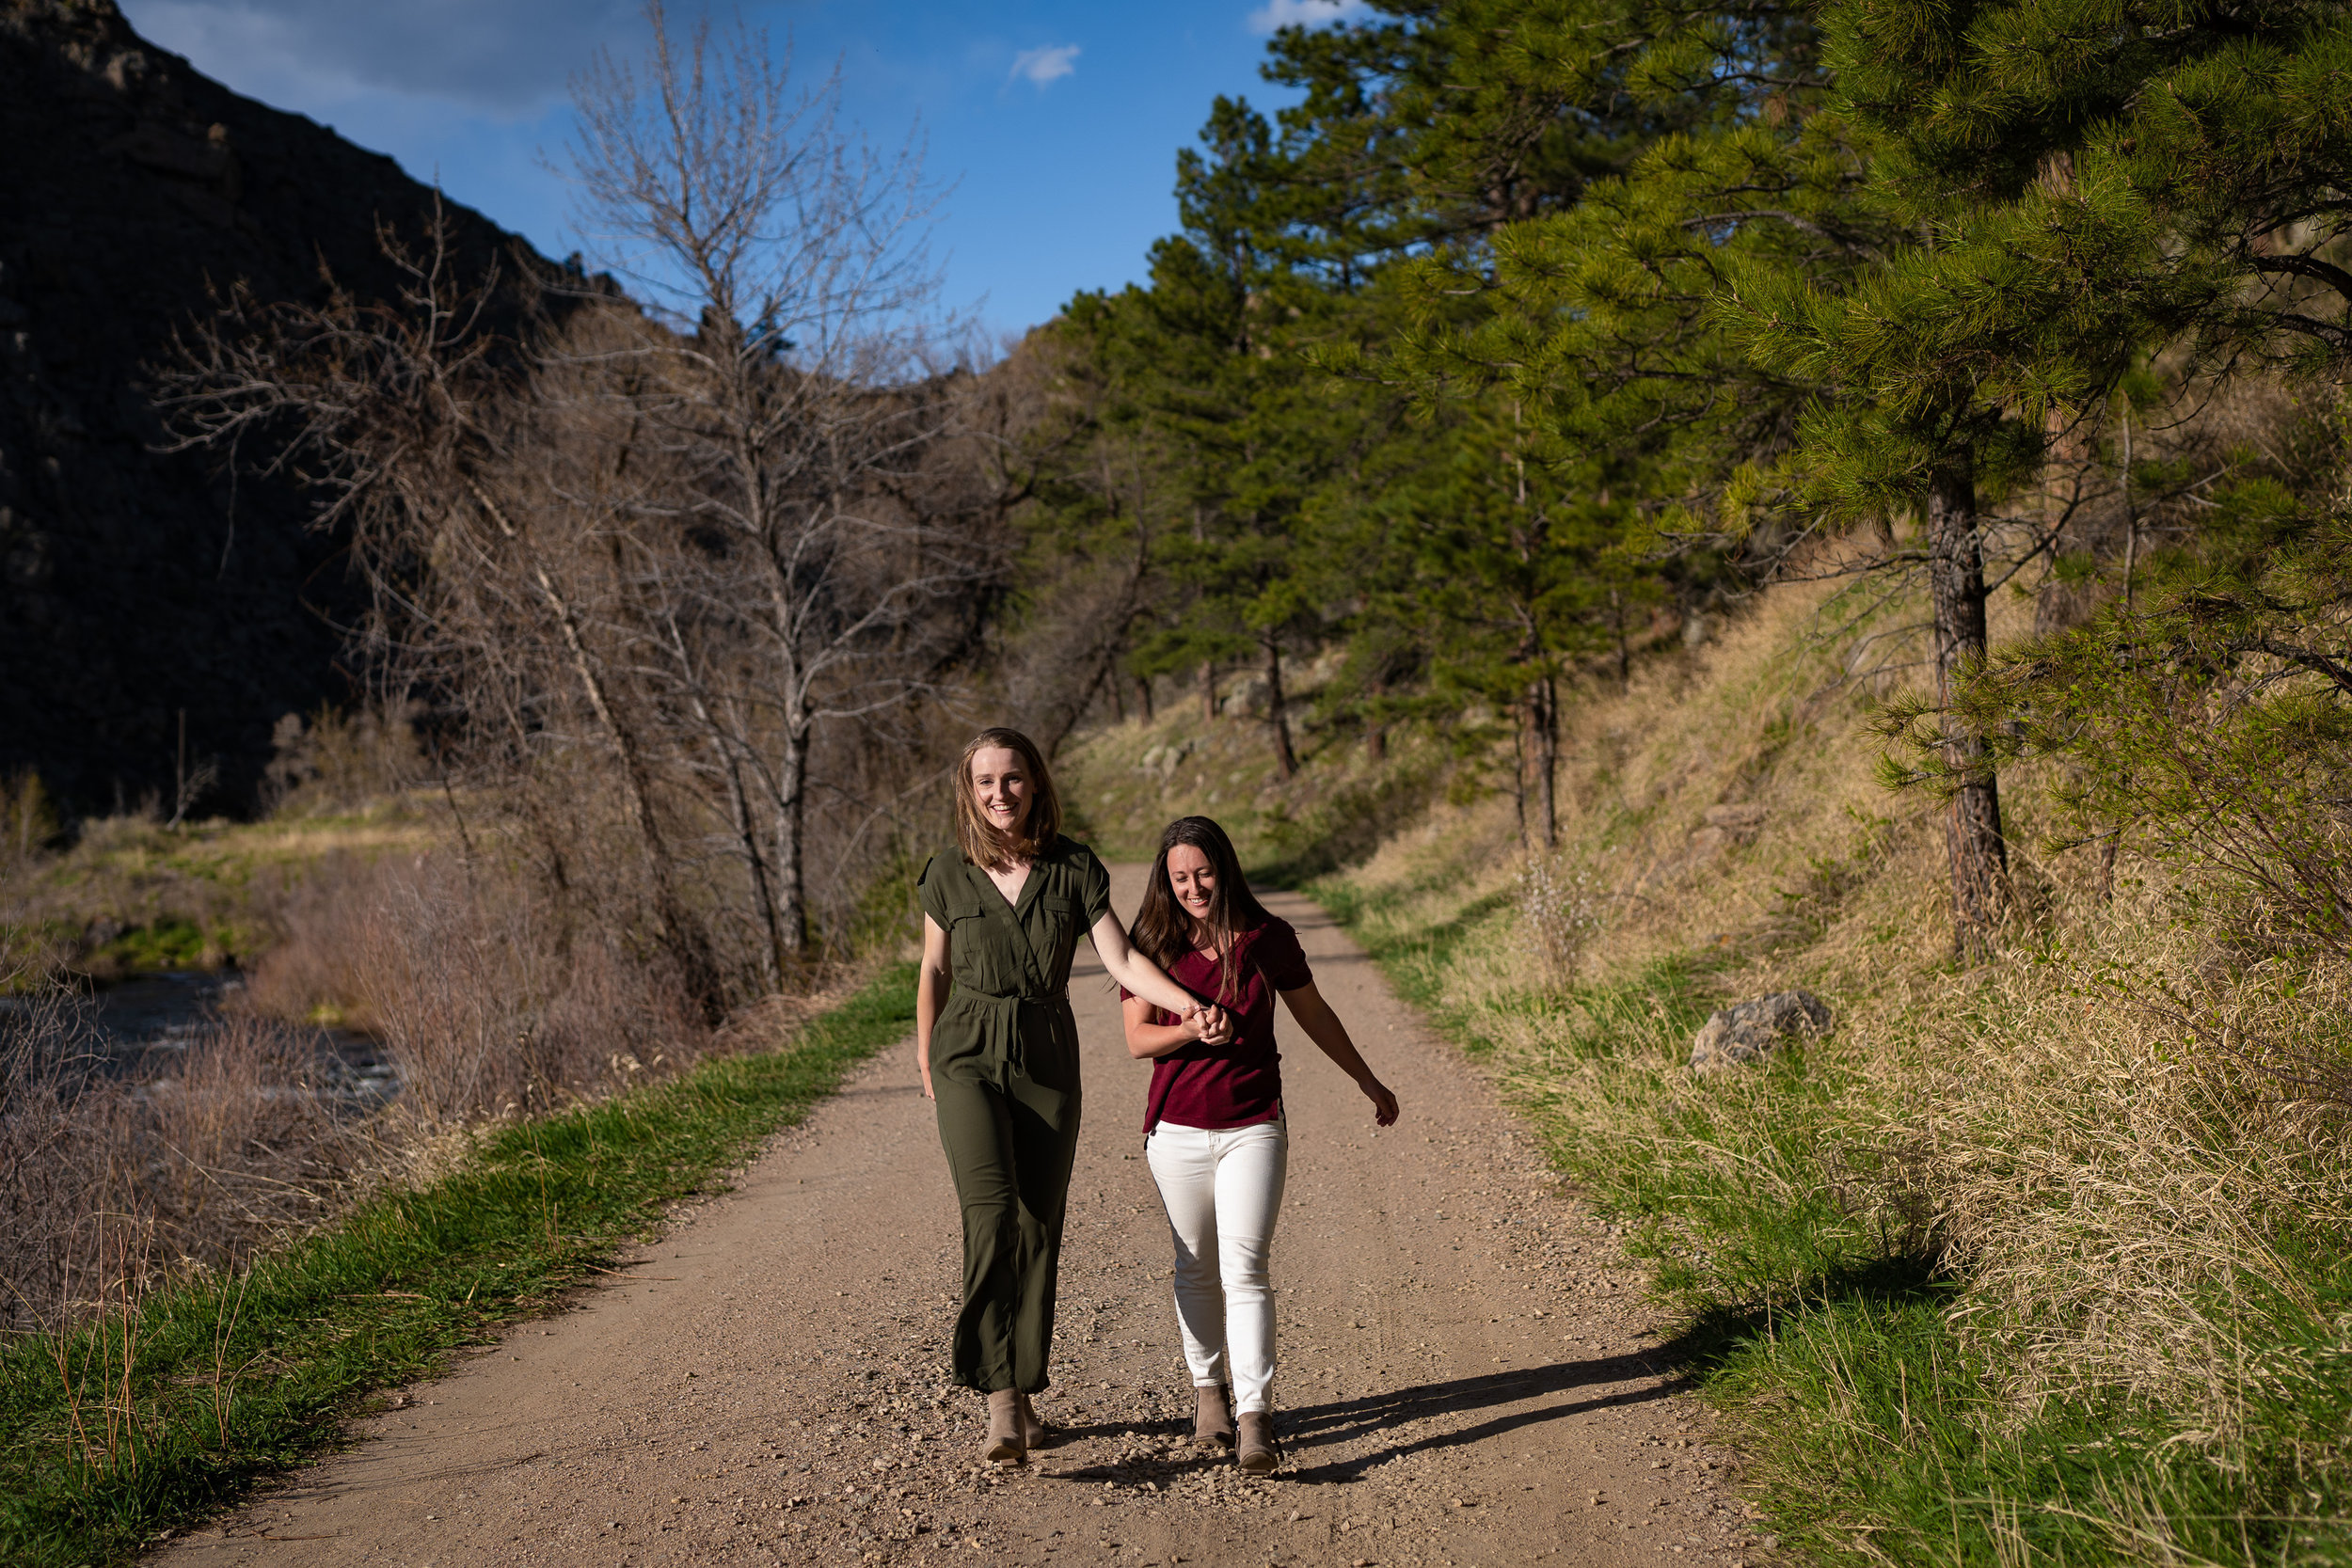 Poudre_Canyon_Engagement_Session-60.jpg